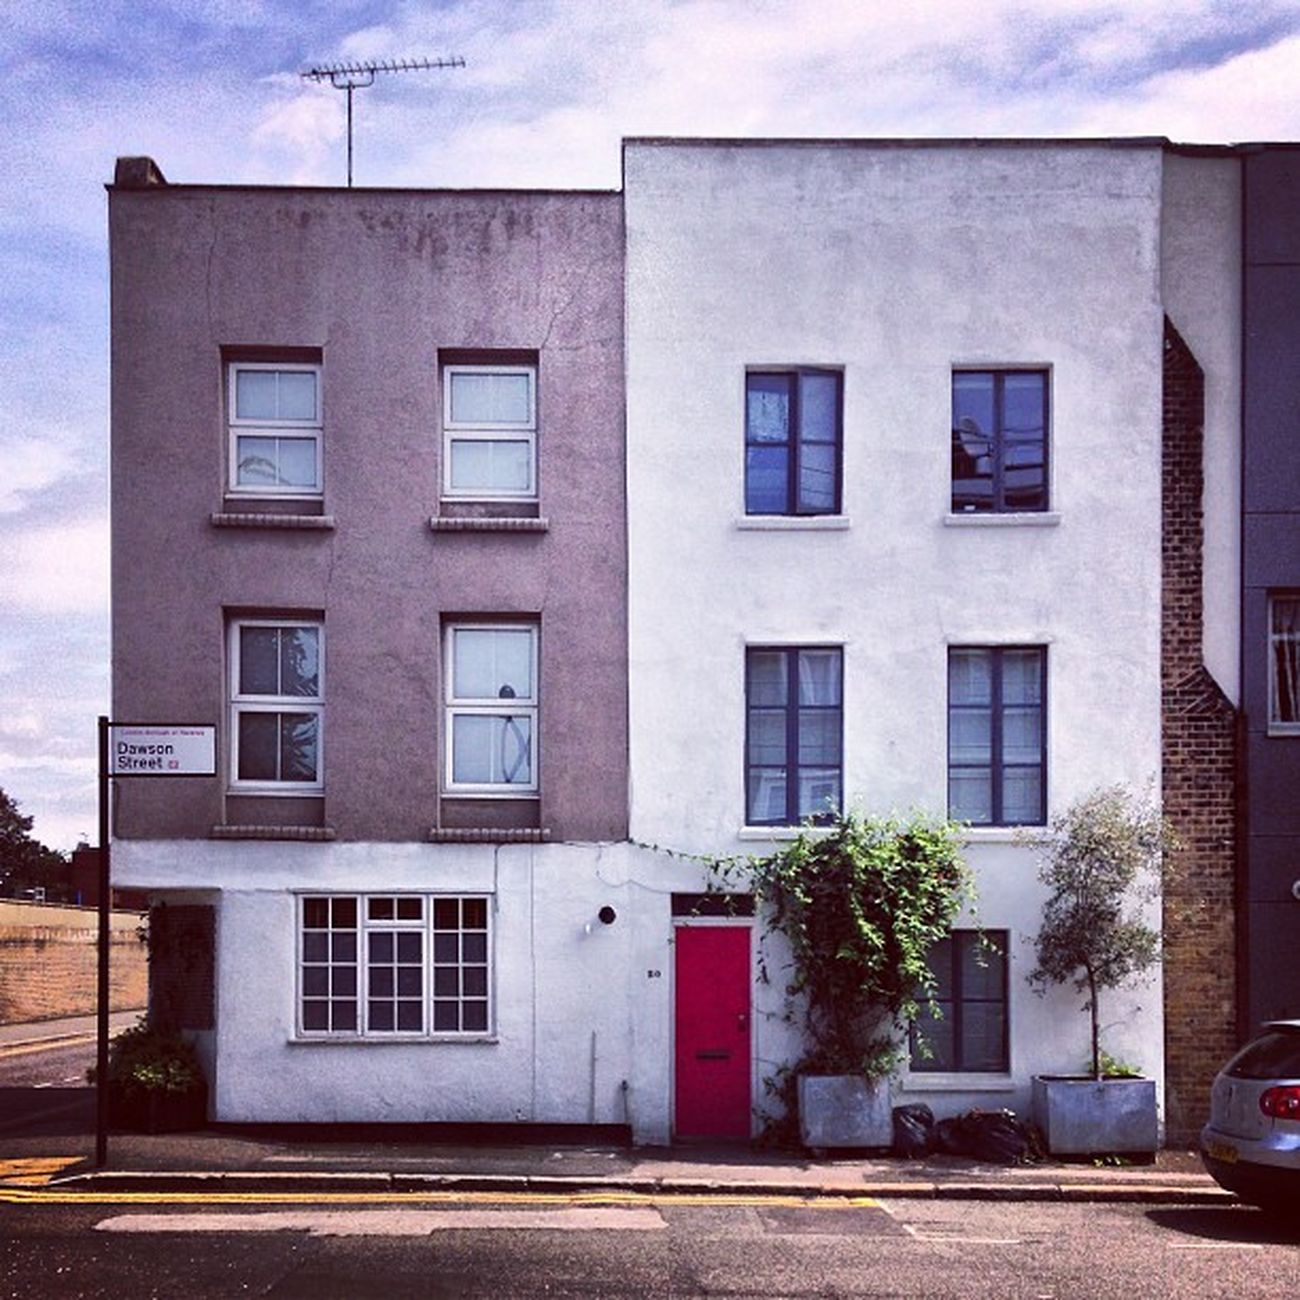 Square Hoxton House Terracedhousing london eastend uk